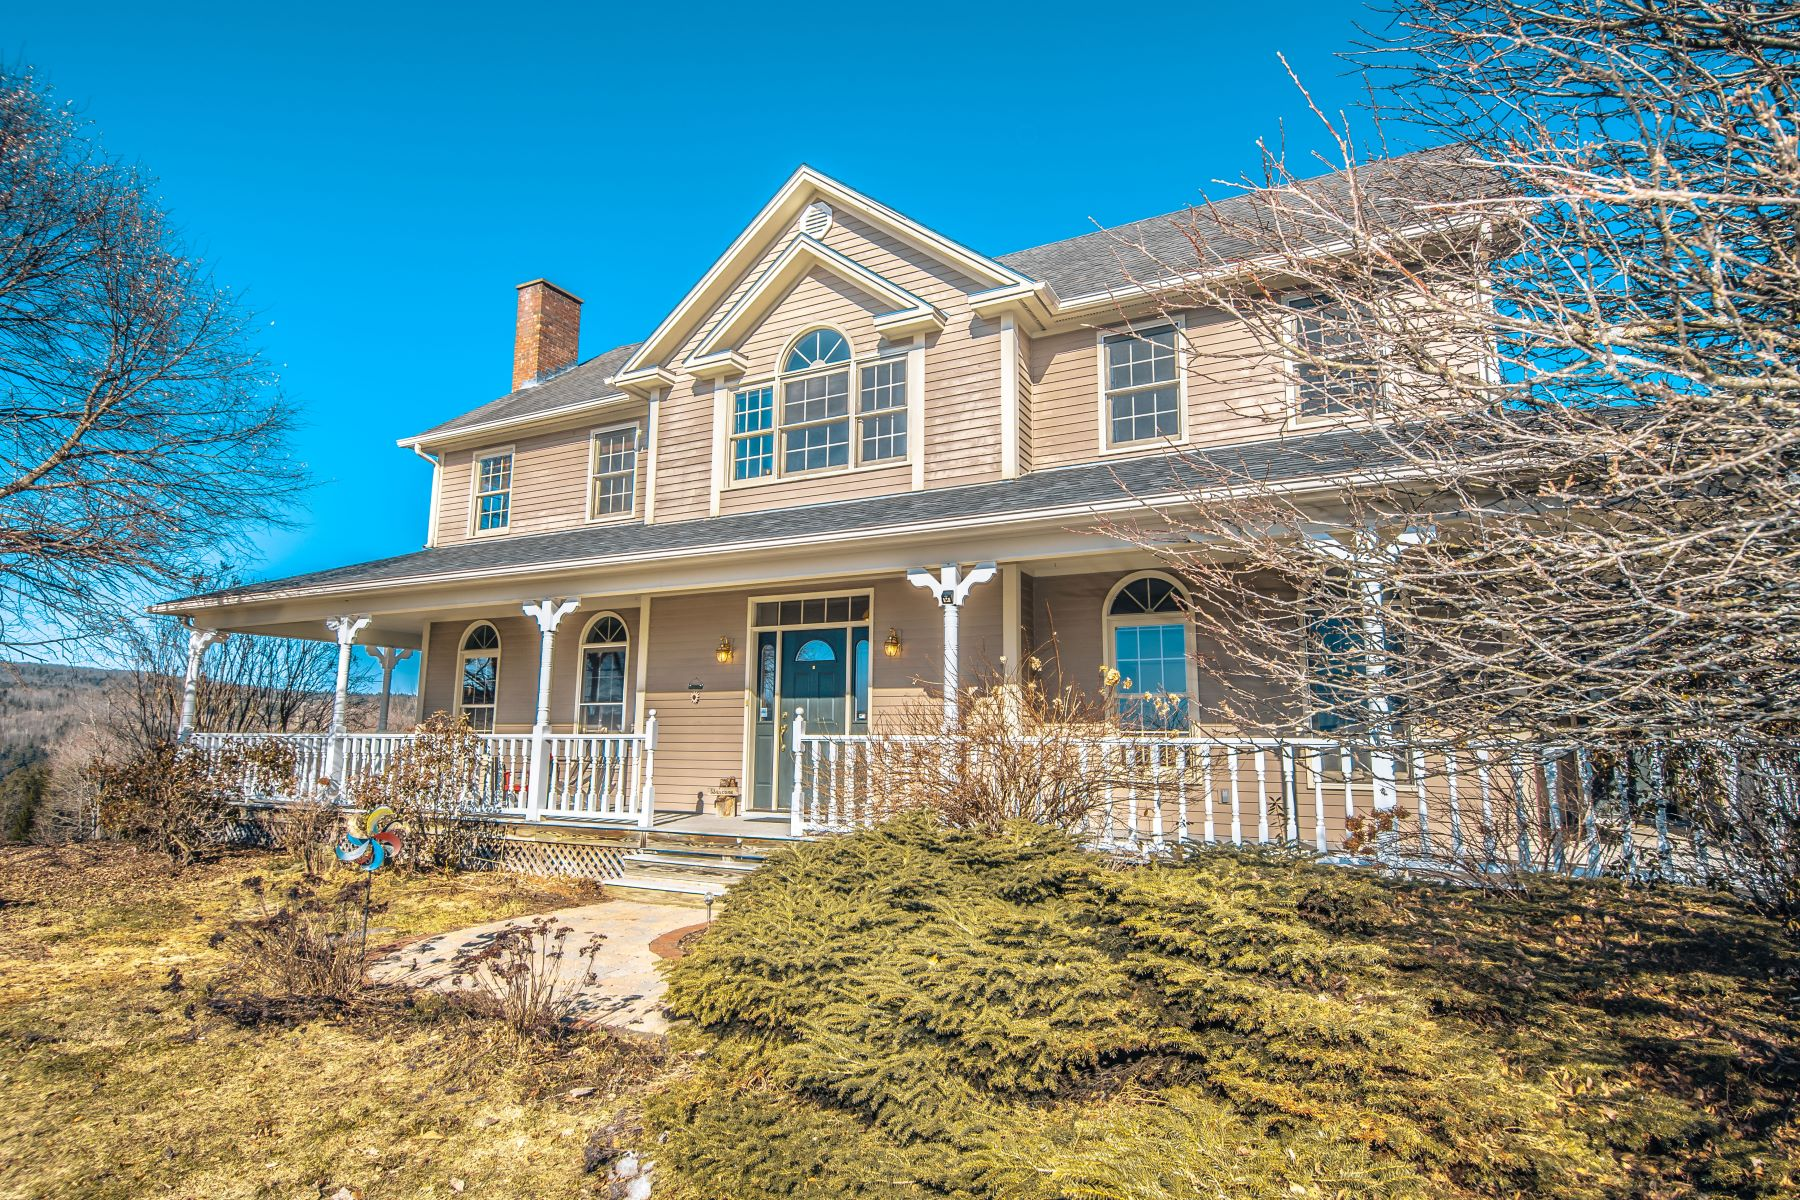 Single Family Home for Sale at 659 Higgins Hill Road, St. Johnsbury 659 Higgins Hill Rd St. Johnsbury, Vermont 05819 United States